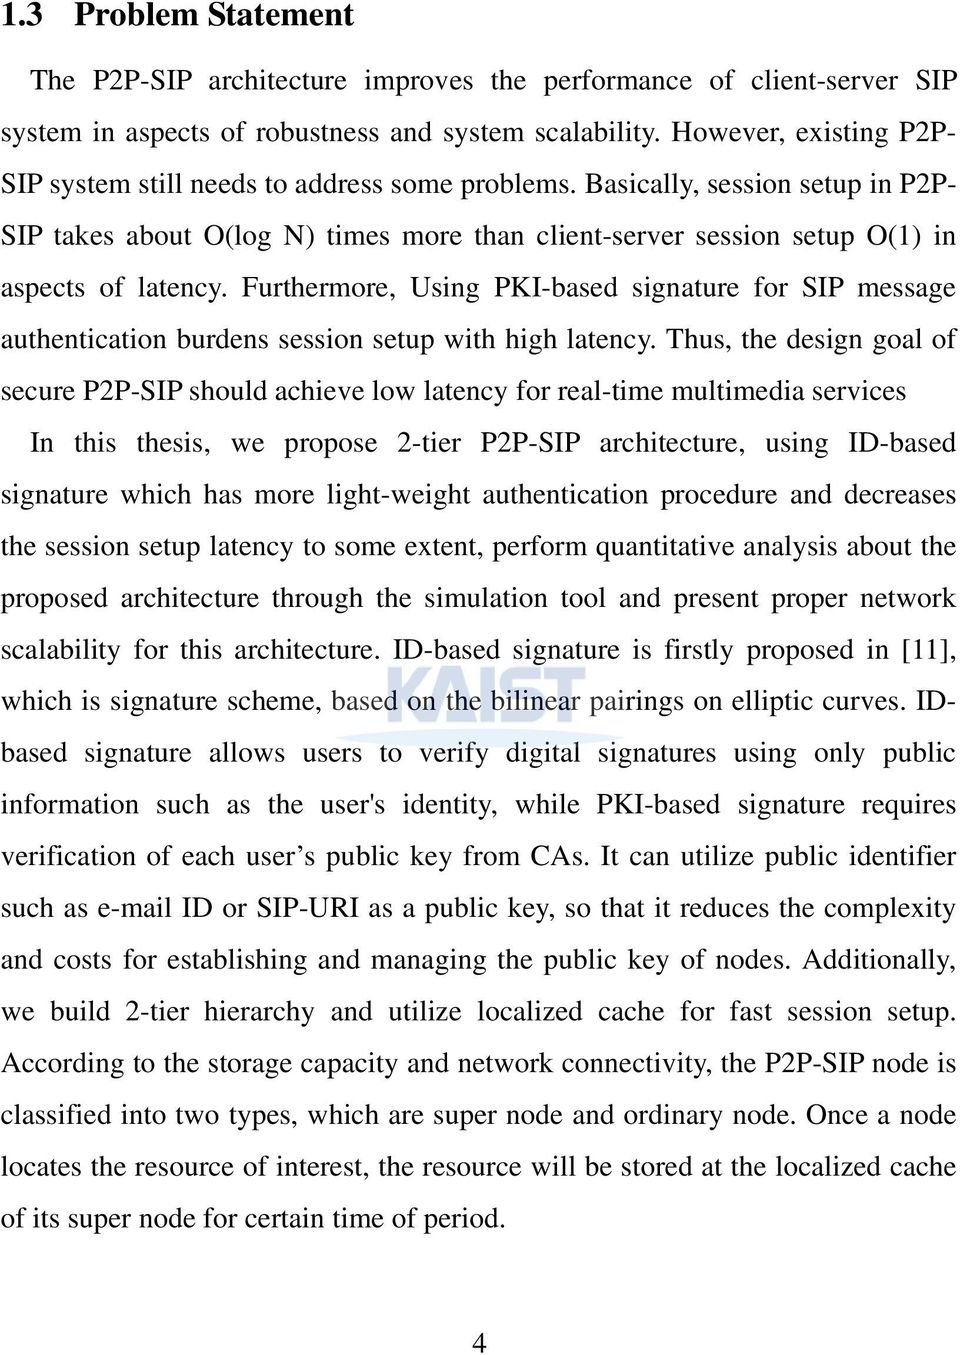 Basically, session setup in P2P- SIP takes about O(log N) times more than client-server session setup O(1) in aspects of latency.